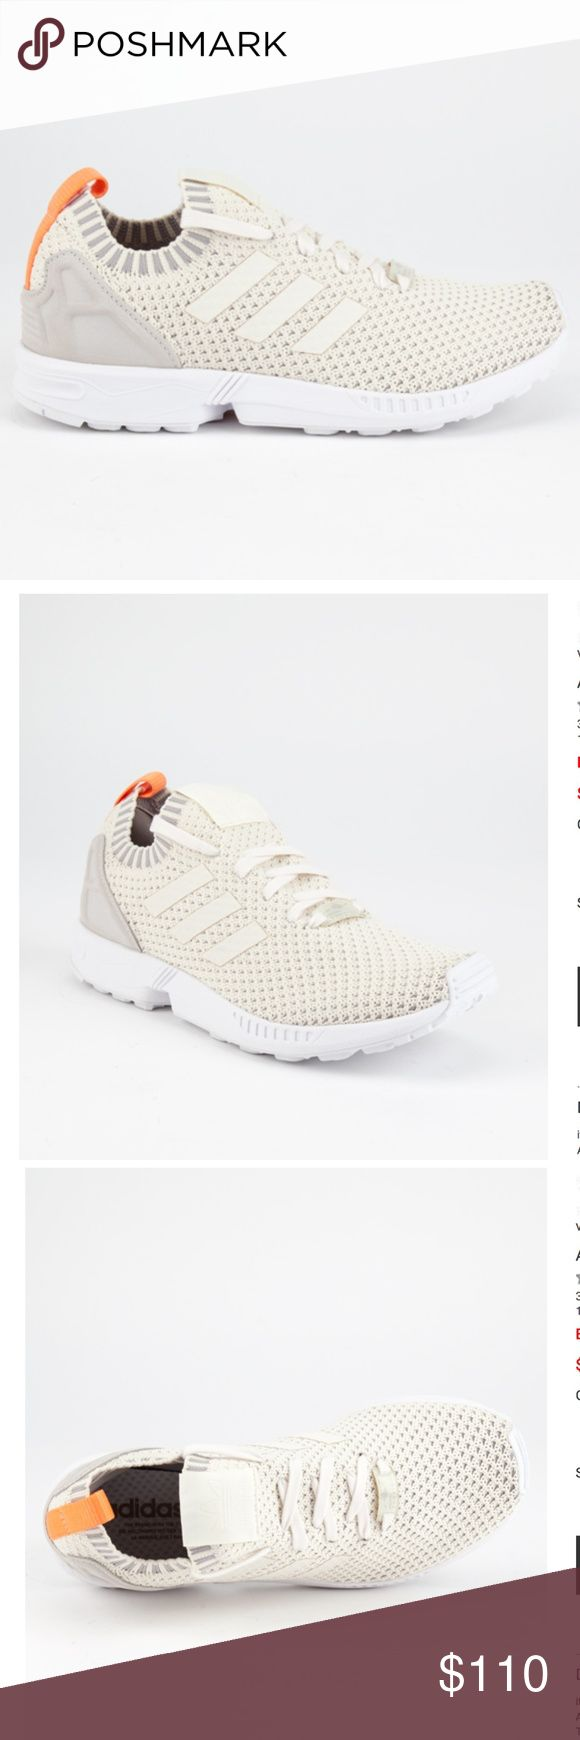 NWT Adidas ZX Flux Primeknit Sneakers - Size 8 Brand new in box! Adidas ZX Flux Primeknit shoes.   Woven knit upper with welded TPU 3-Stripes Torsion Systemfor midfoot integrity, EVA midsole, supportive heel cage, rubber outsole  Color: Chalk Size: 8 adidas Shoes Sneakers